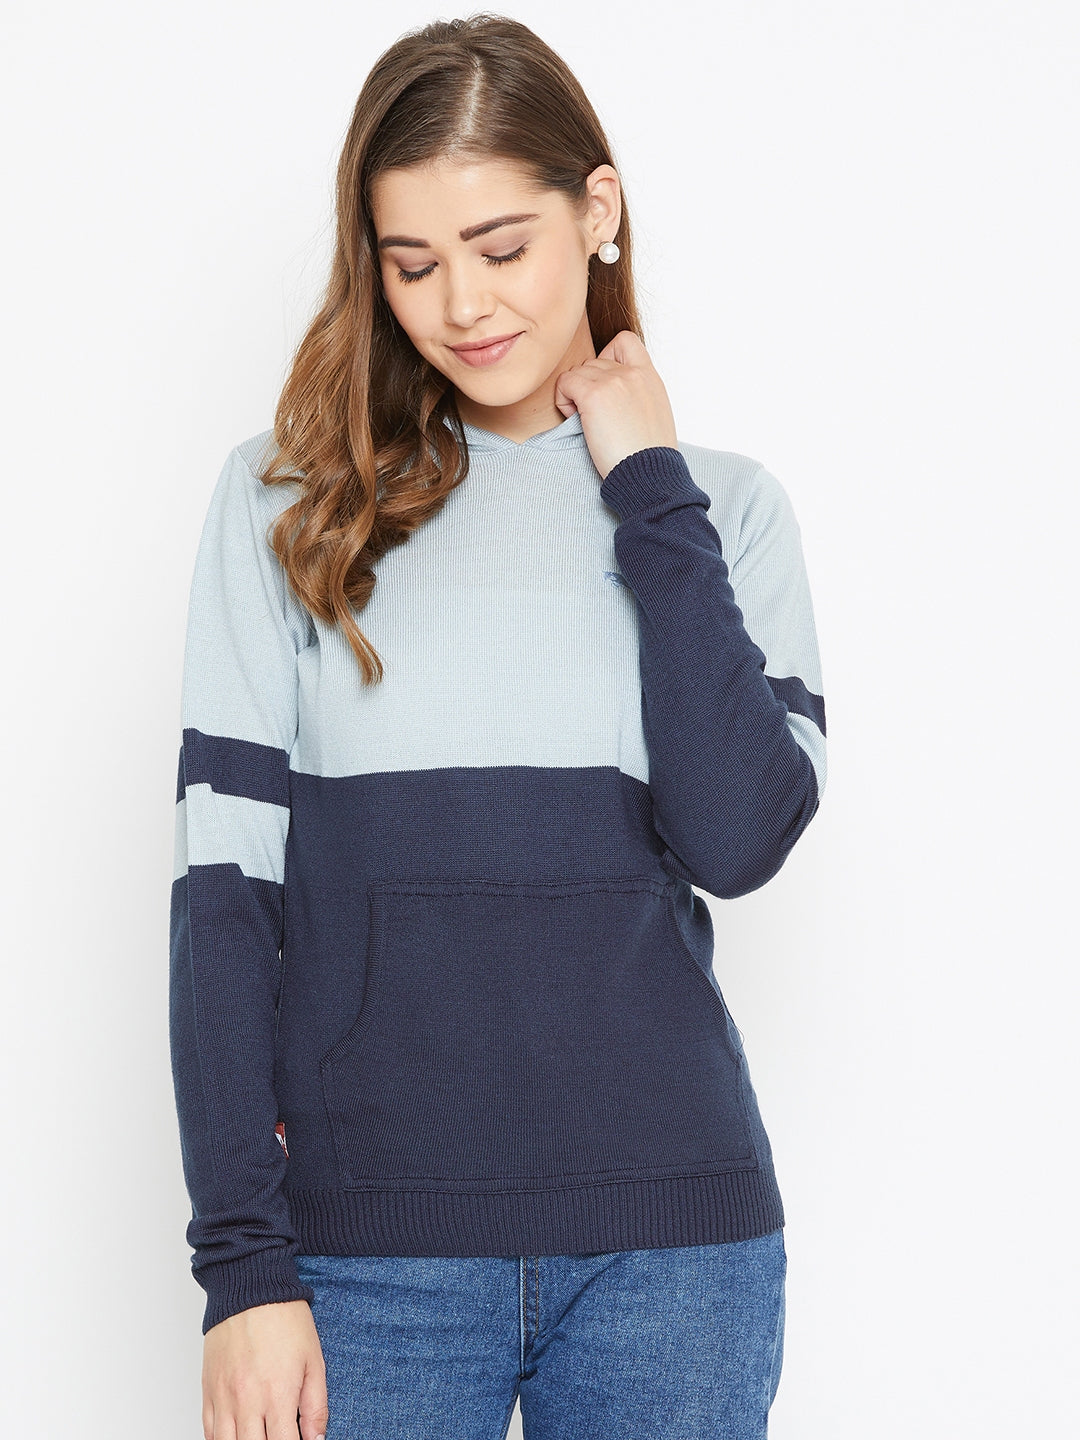 JUMP USA Women Blue Colourblocked Hooded Sweater - JUMP USA